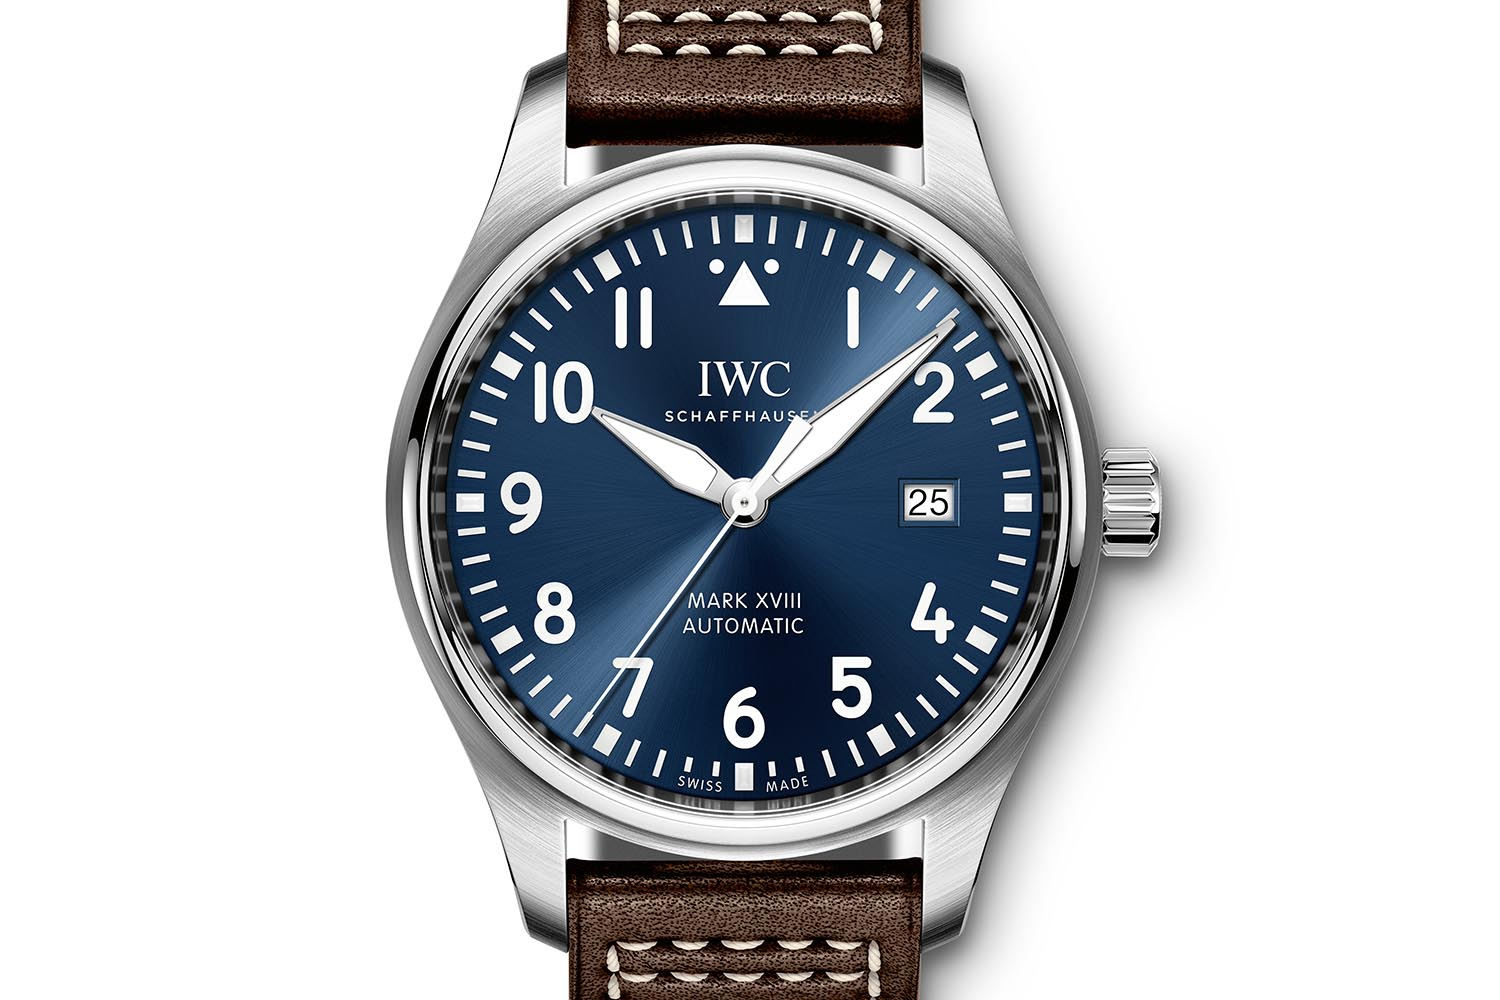 SIHH 2016 - The new IWC Pilot's Watch Mark XVIII